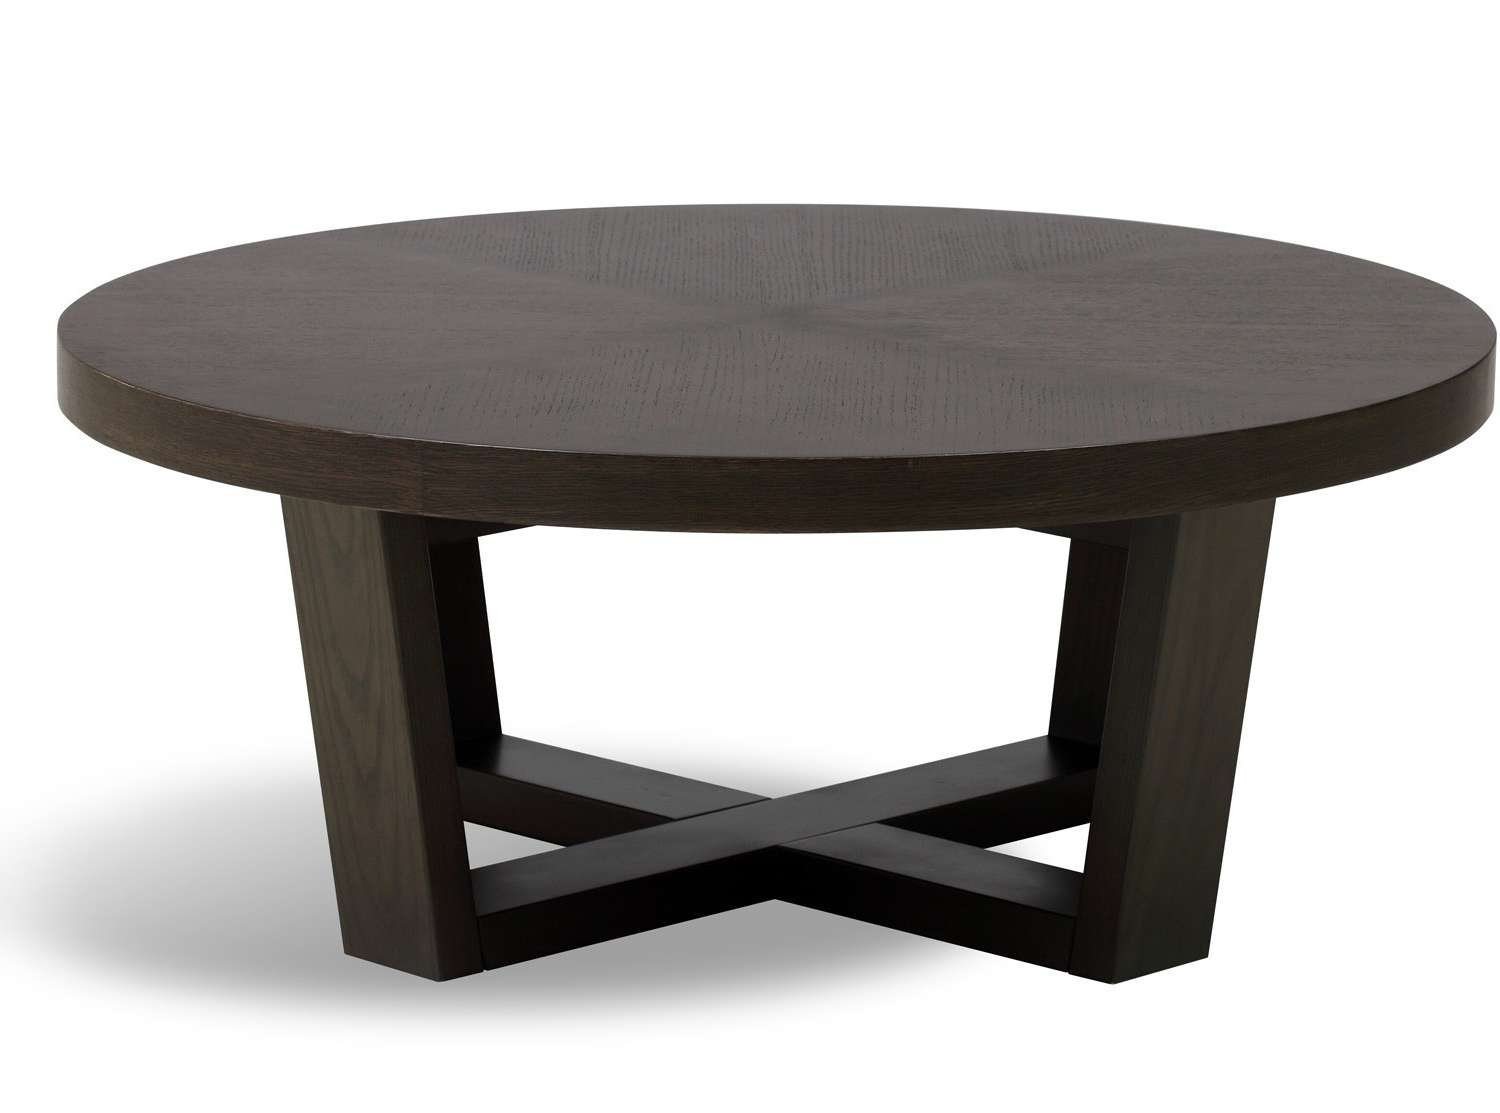 Preferred Circular Coffee Tables Inside Coffee Tables : Circular Coffee Tables Cheap Round Melbourne Table (View 9 of 20)